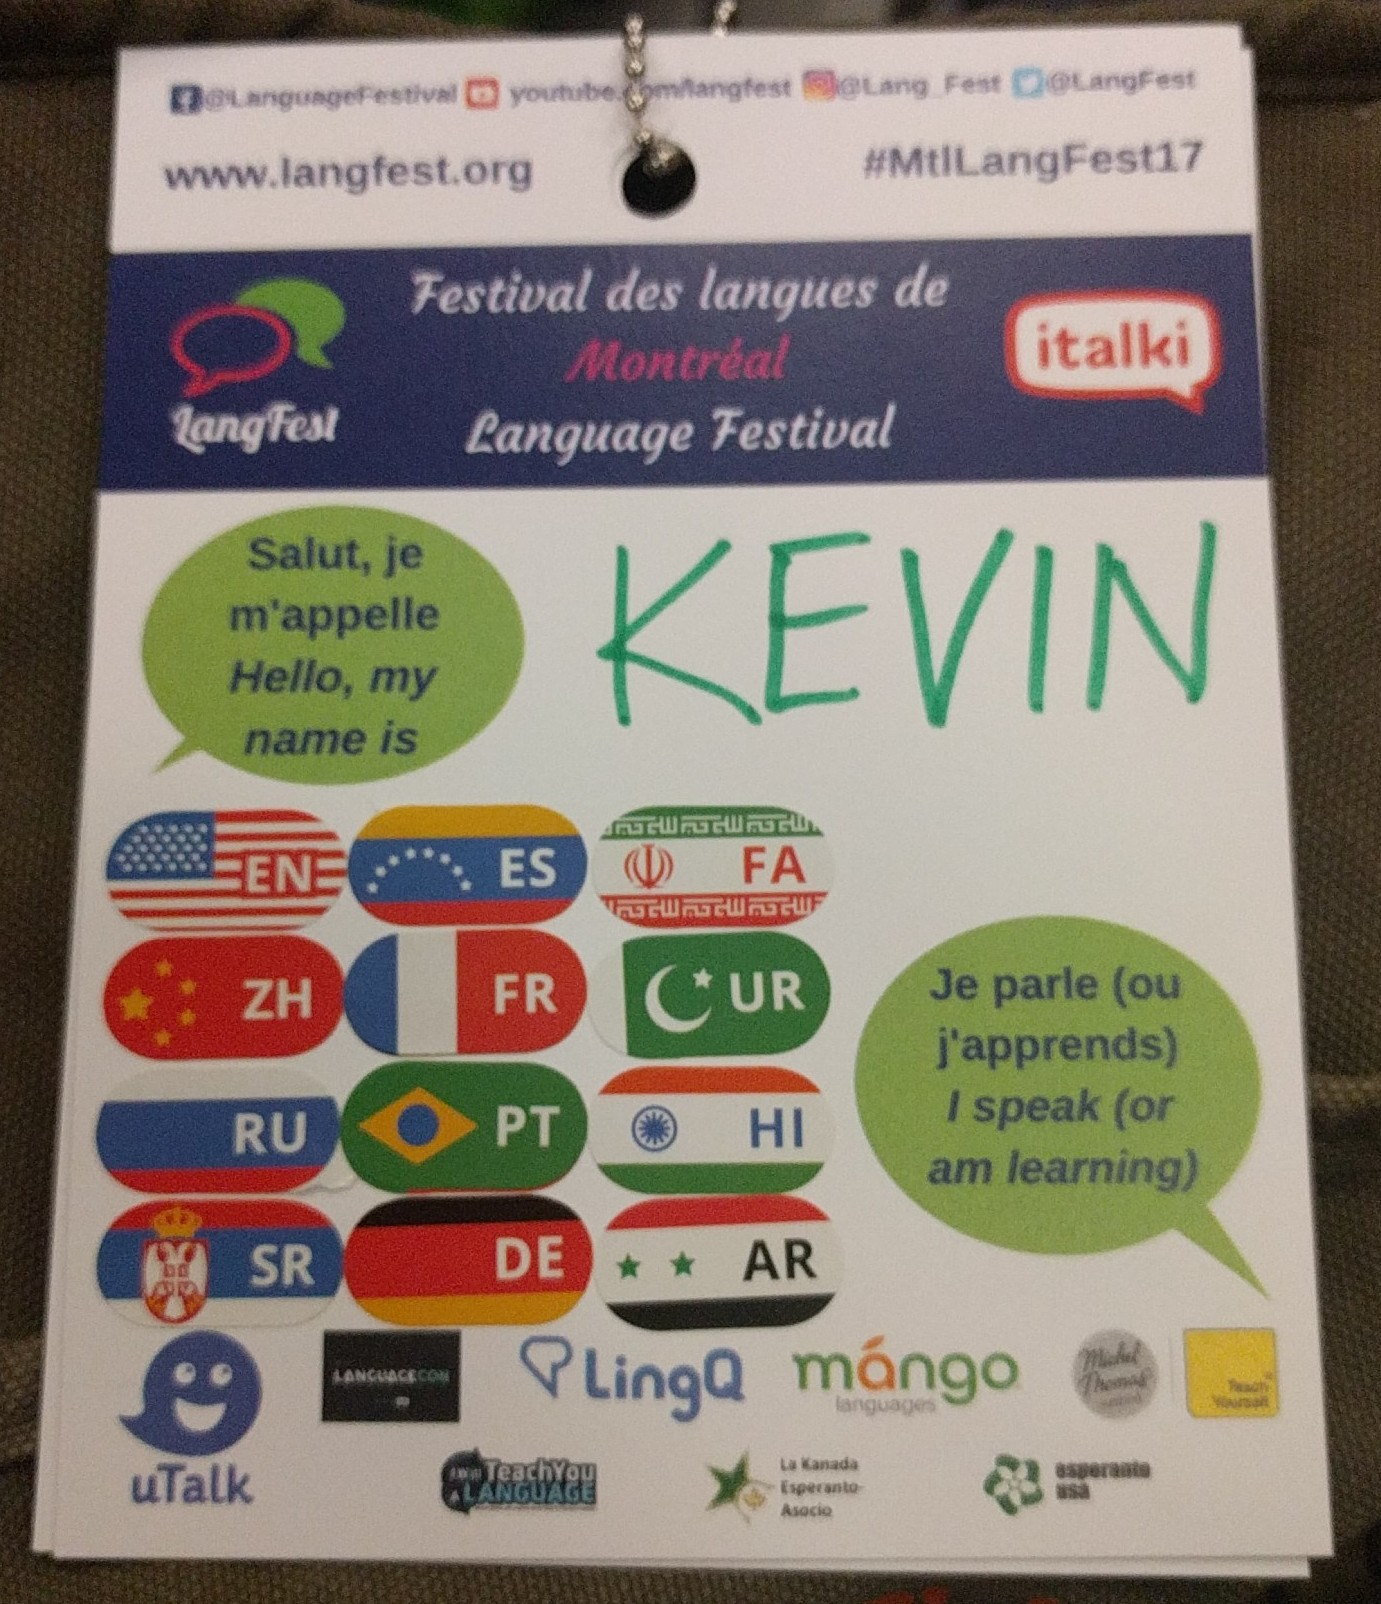 LangFest Montreal: Four Takeaways from the Language Festival